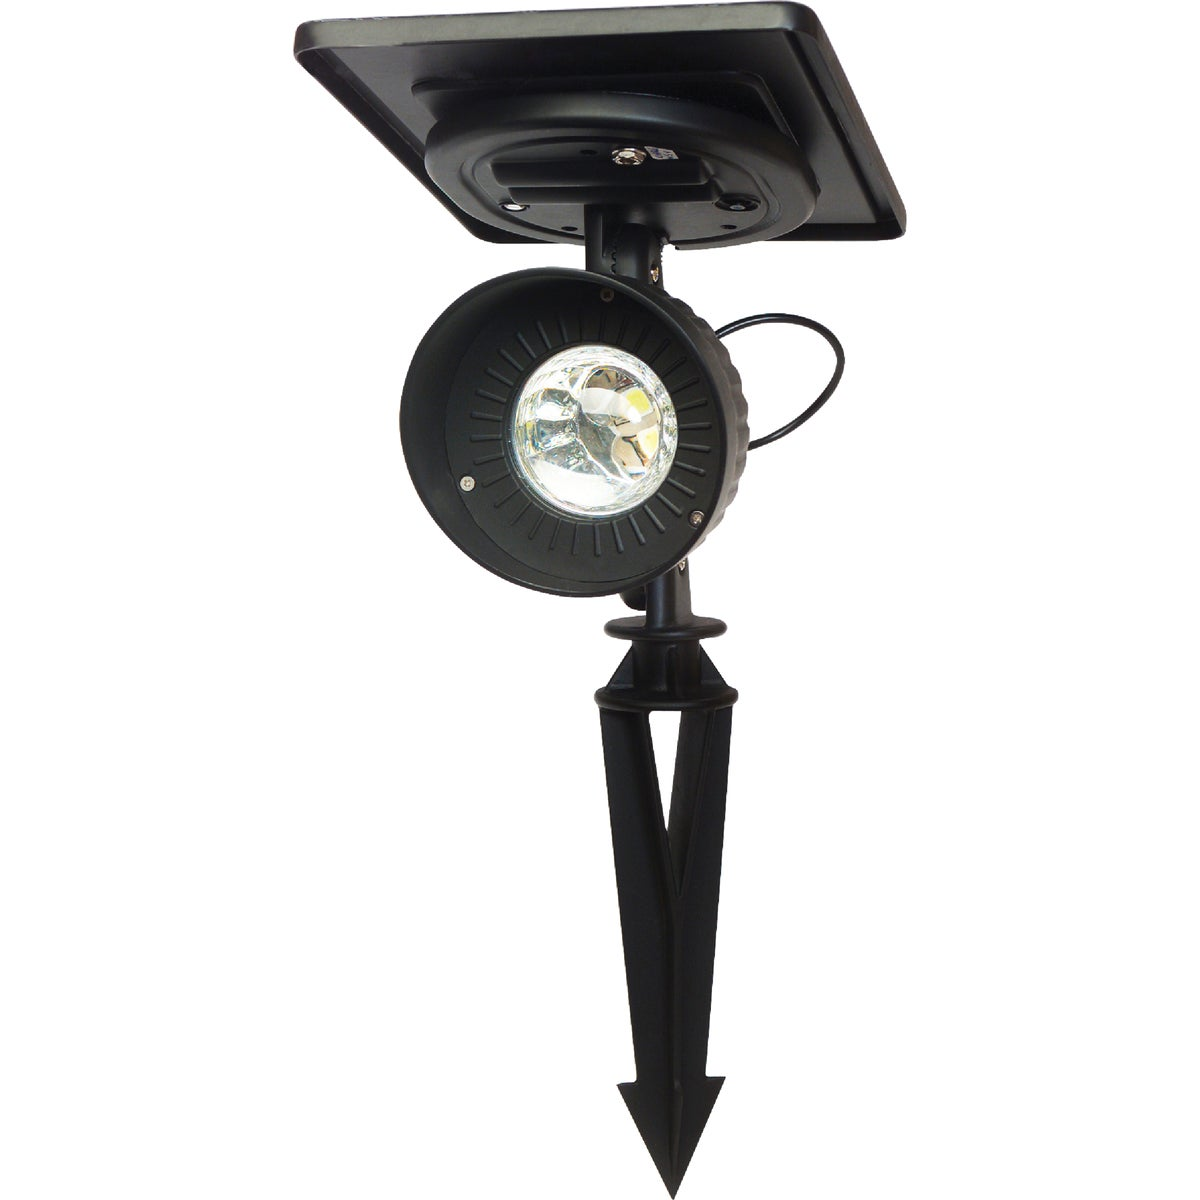 PROGRESSIVE SOLAR LIGHT